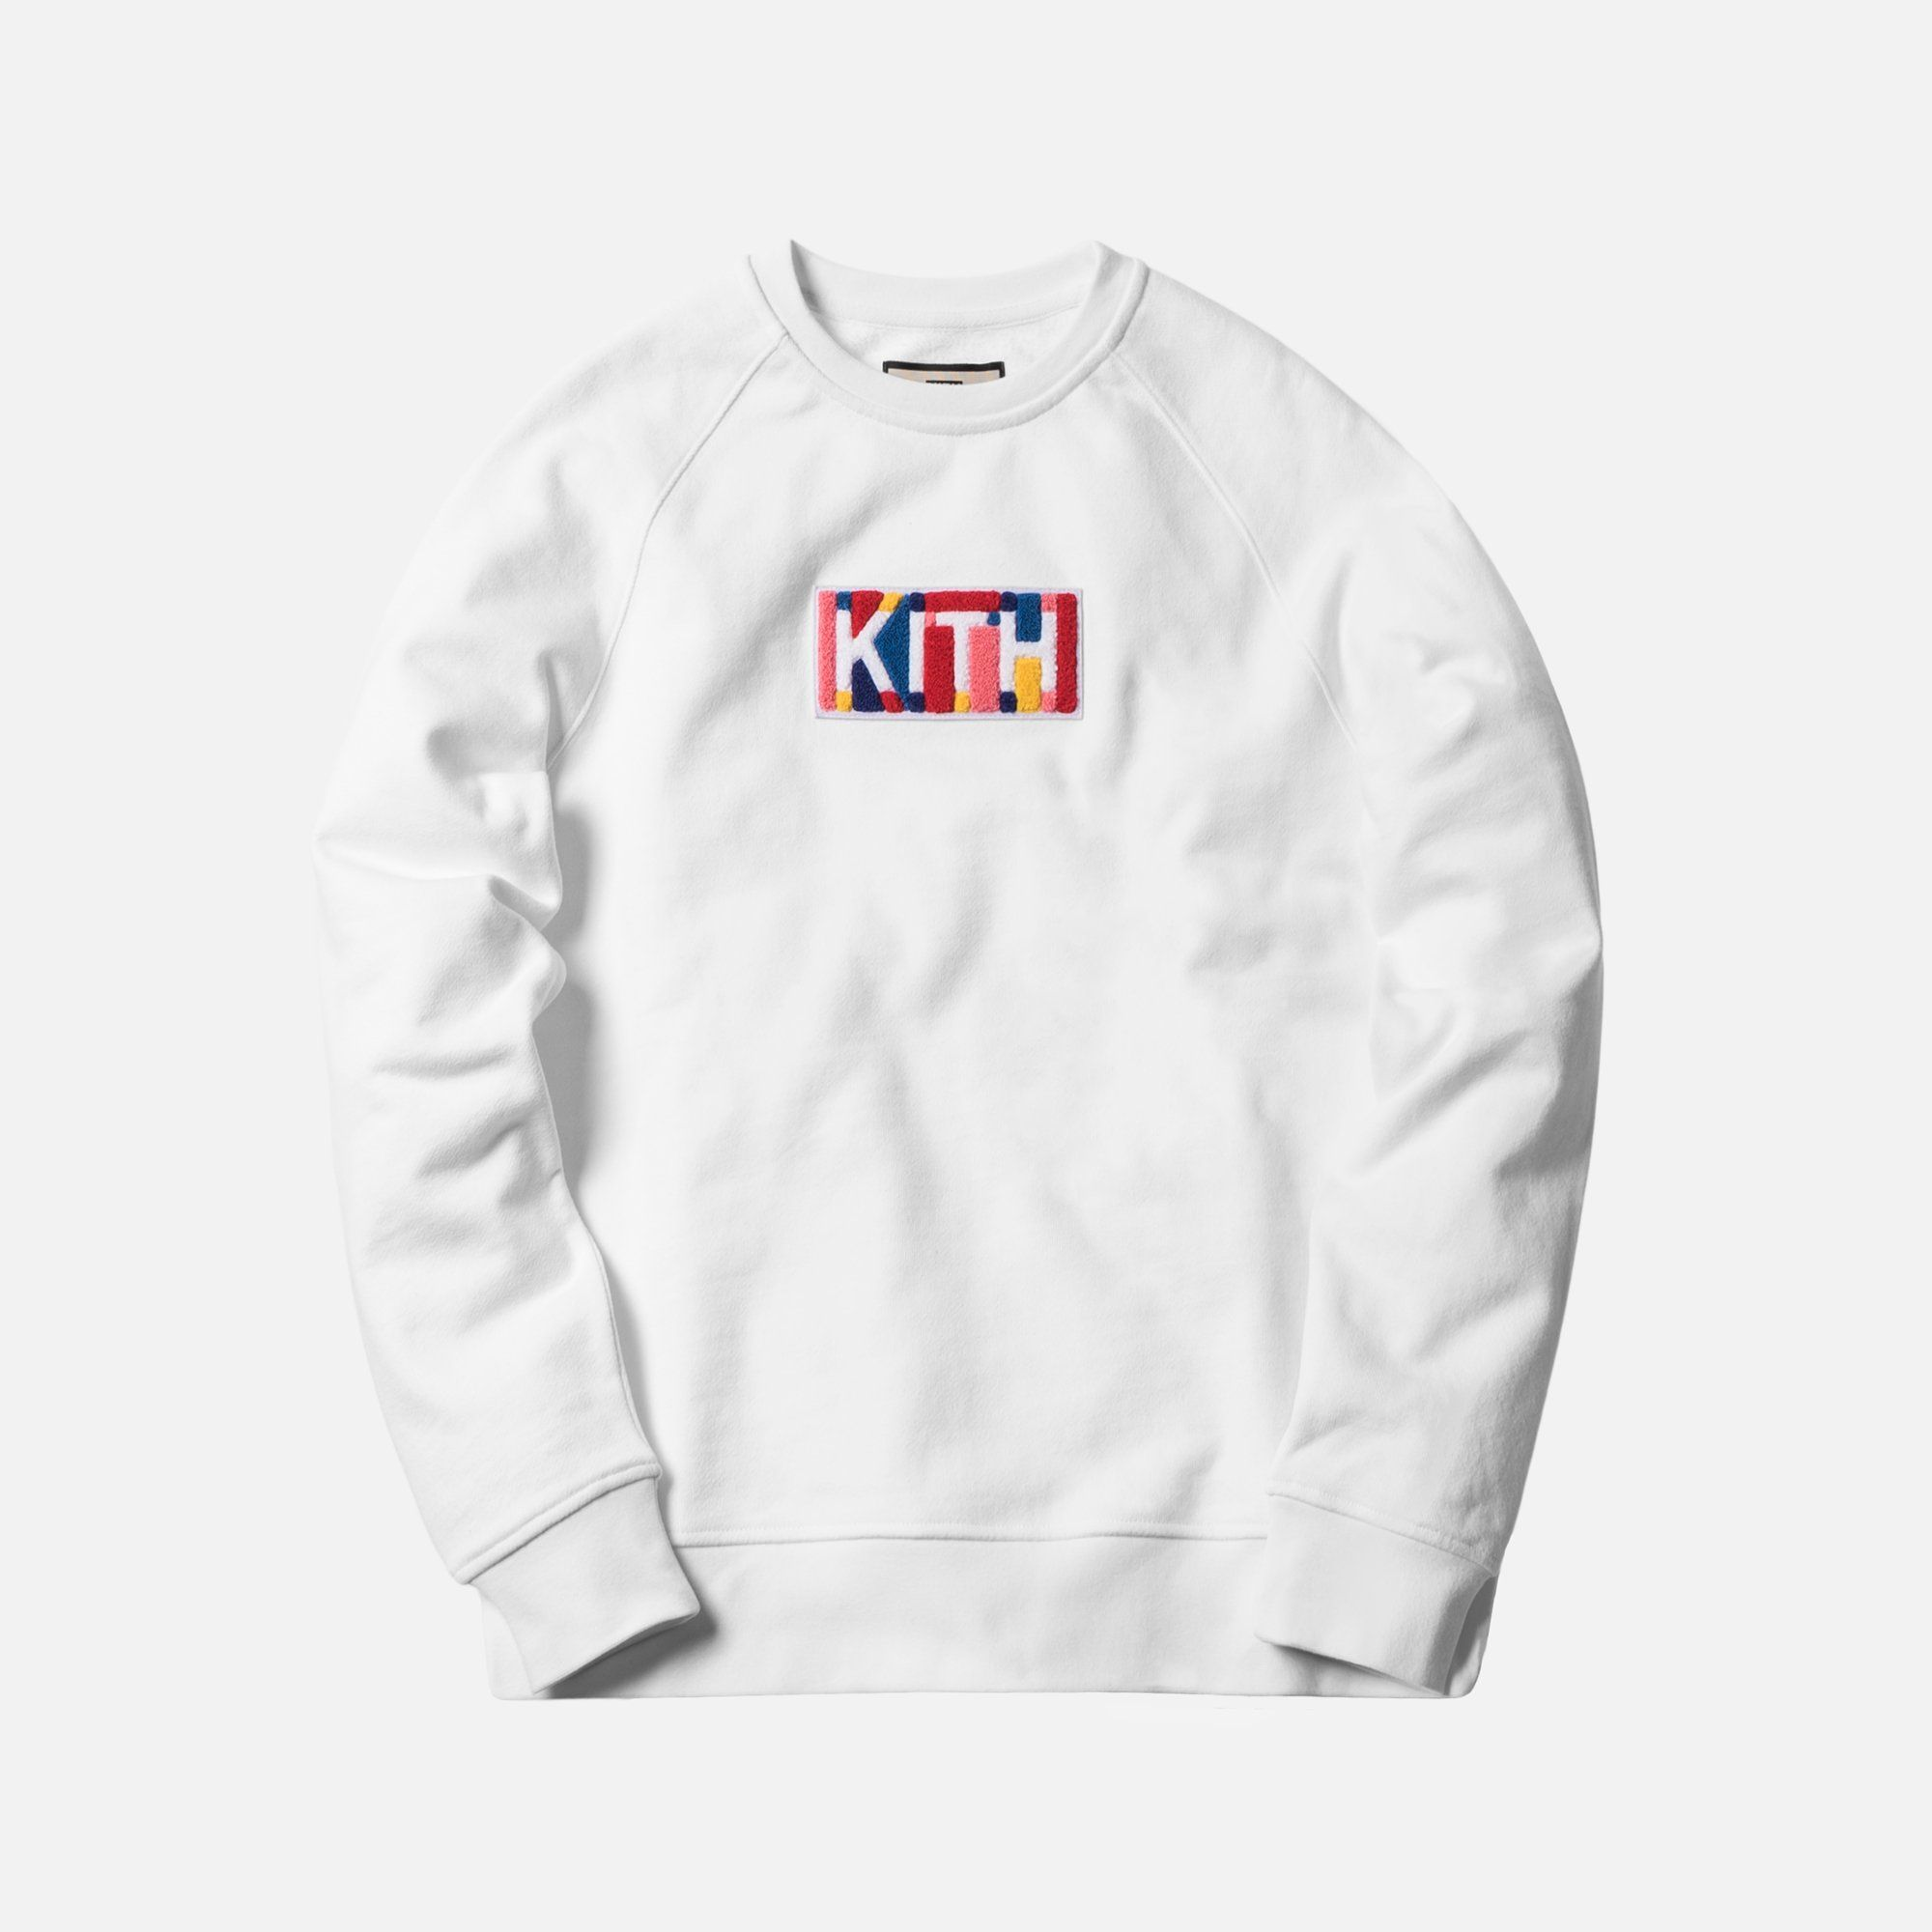 a92d39f2 Kith Geo Color Crewneck - White | Hypebeast | Crew neck, Color ...